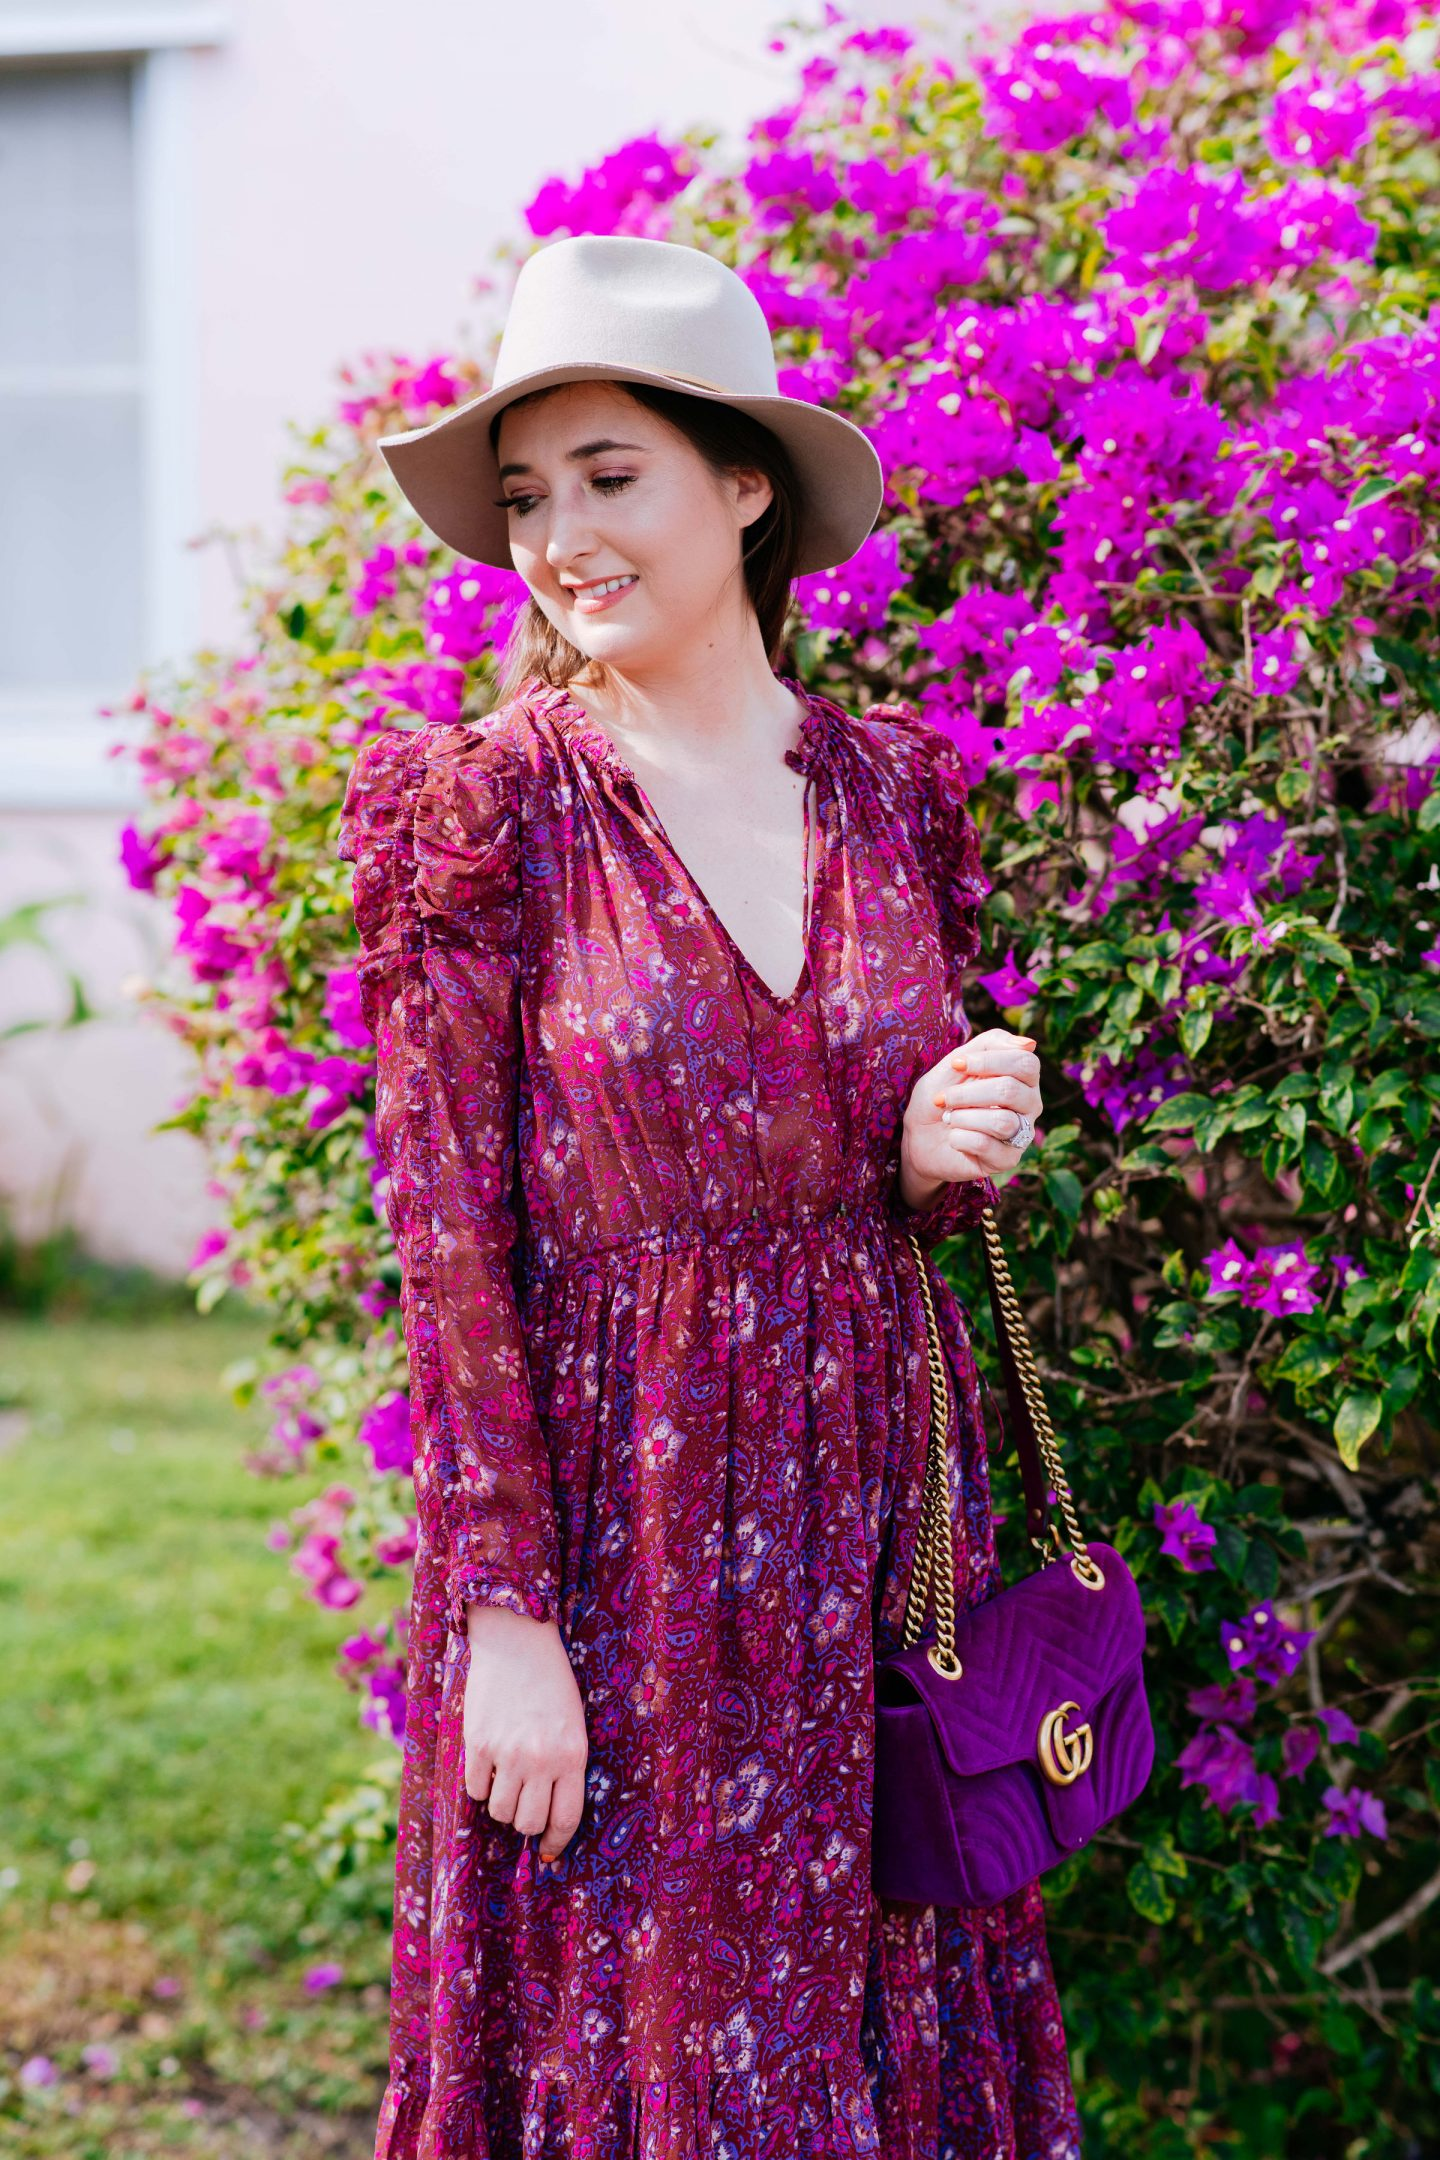 Ulla johnson dress, ulla johnson izar dress, ulla johnson, paisley dress, midi dress, ulla johnson sale, gucci marmont velvet bag, taupe hat